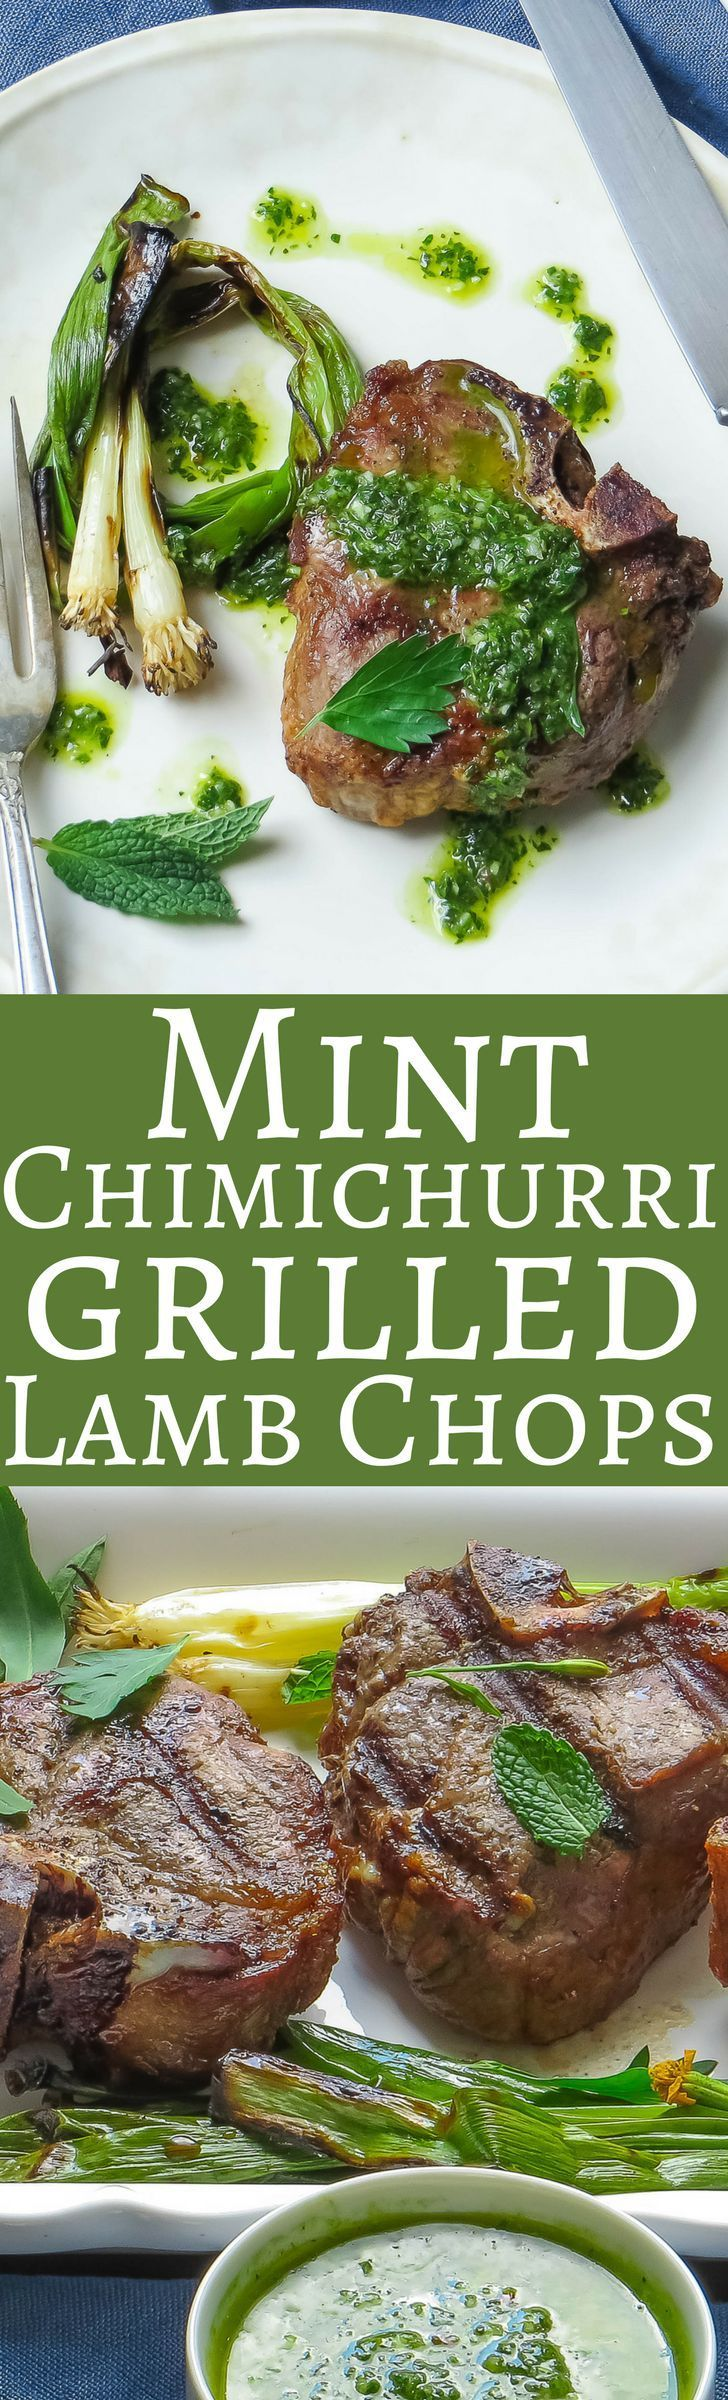 This easy recipe for grilled lamb is ready in half an hour. Serve with a simple chimichurri loaded with fresh herbs, garlic and mint! It's perfect for Spring!